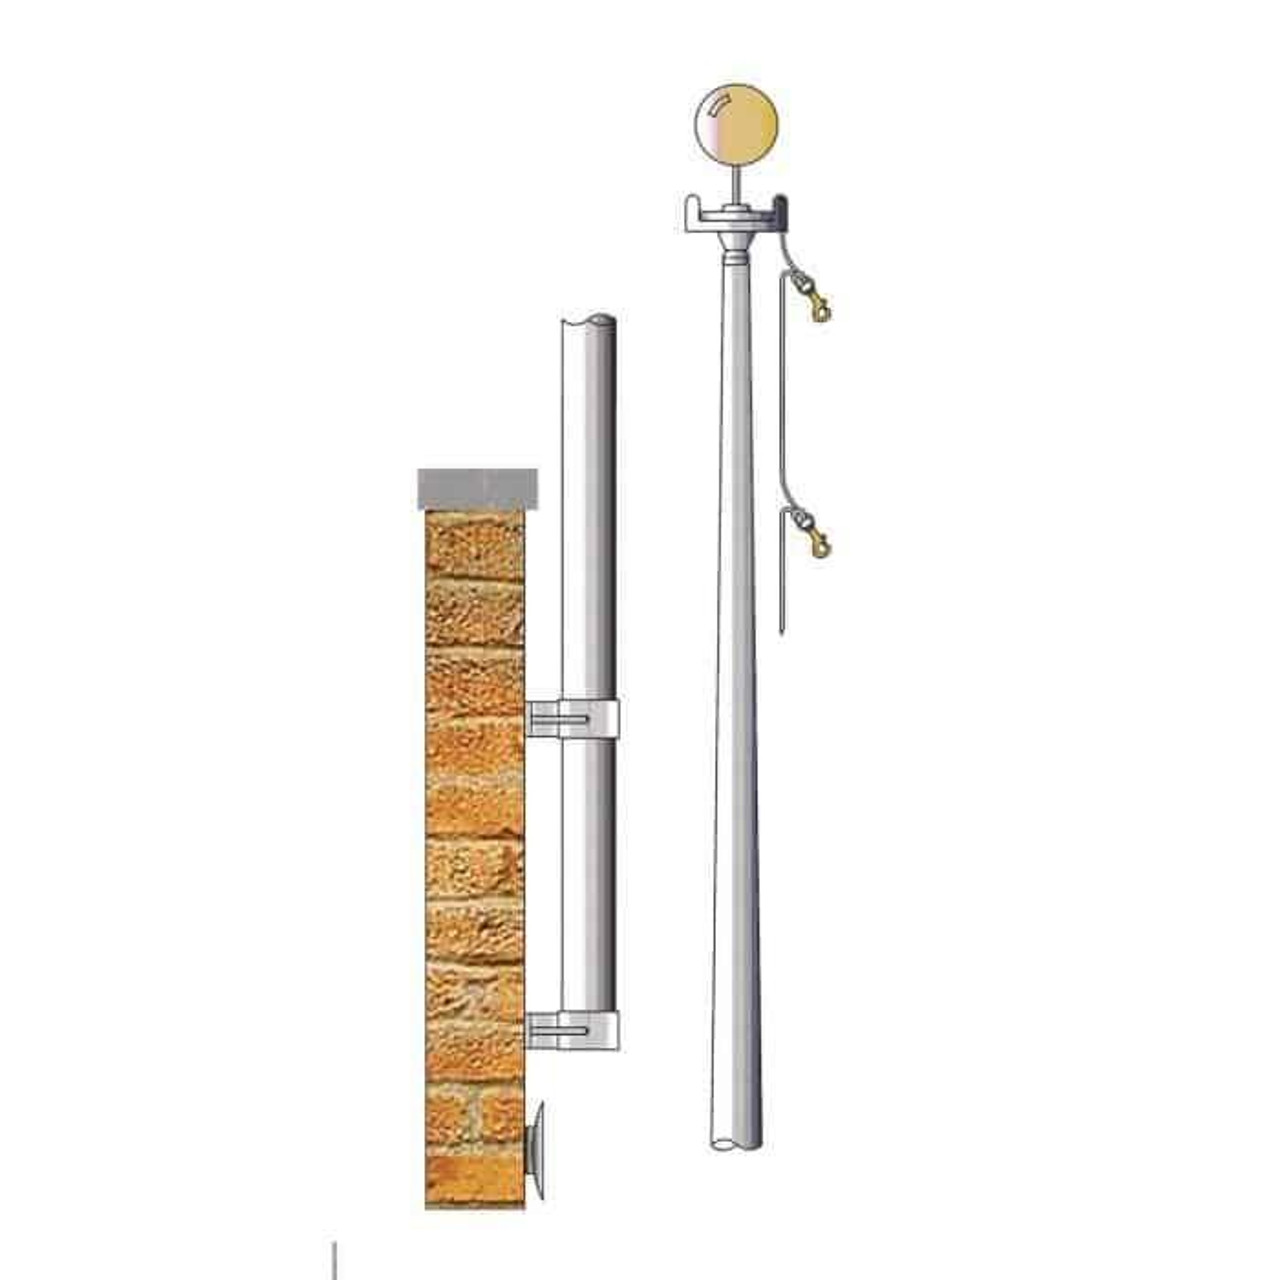 27 Vertical Wall Mounted Flagpole LVW27